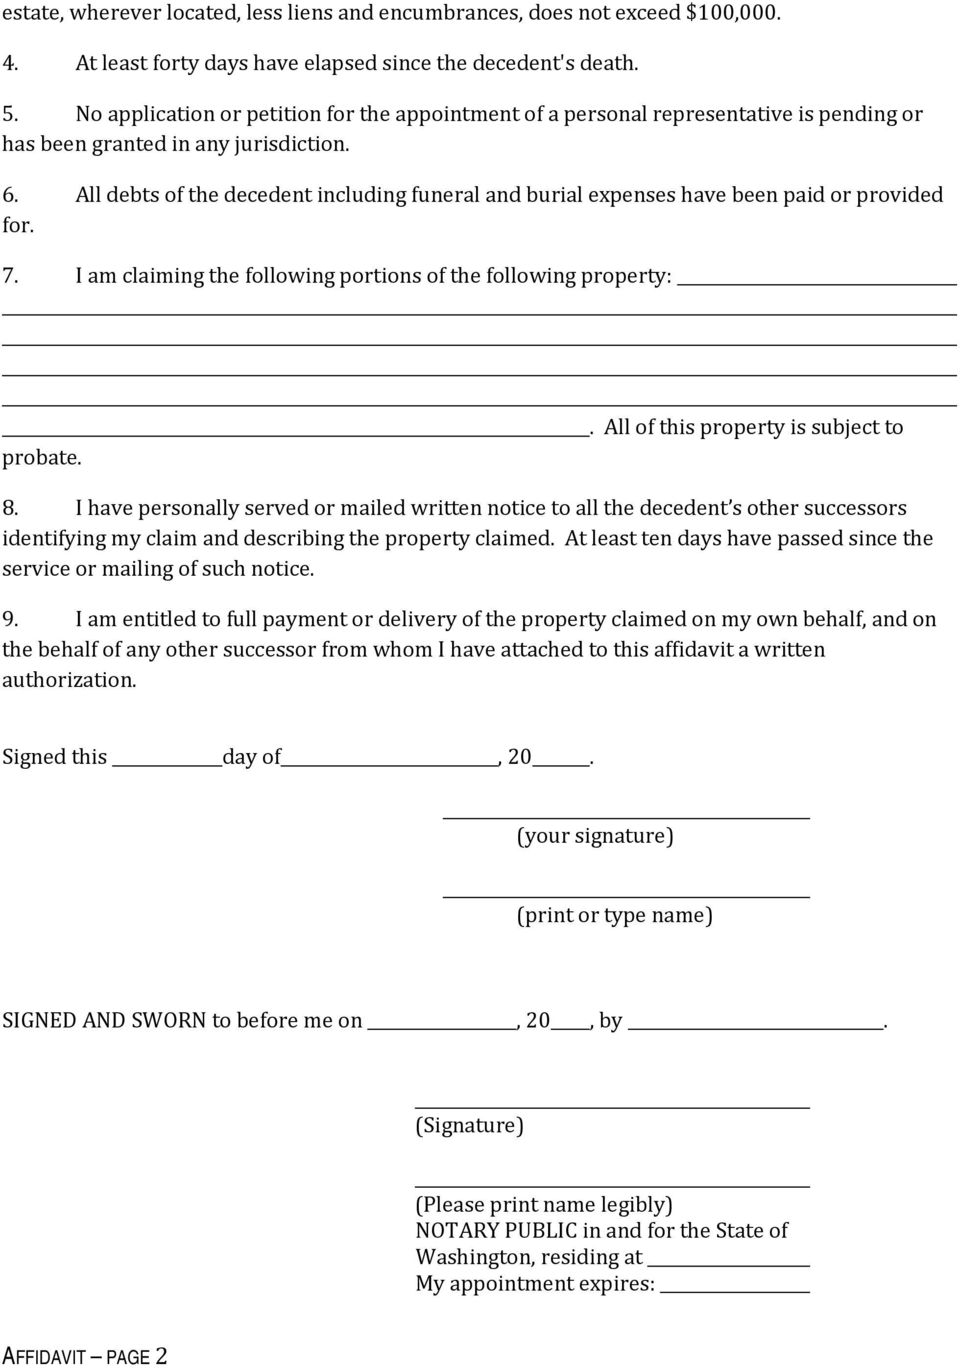 How to claim the personal property of someone who has died do it all debts of the decedent including funeral and burial expenses have been paid or provided for solutioingenieria Image collections